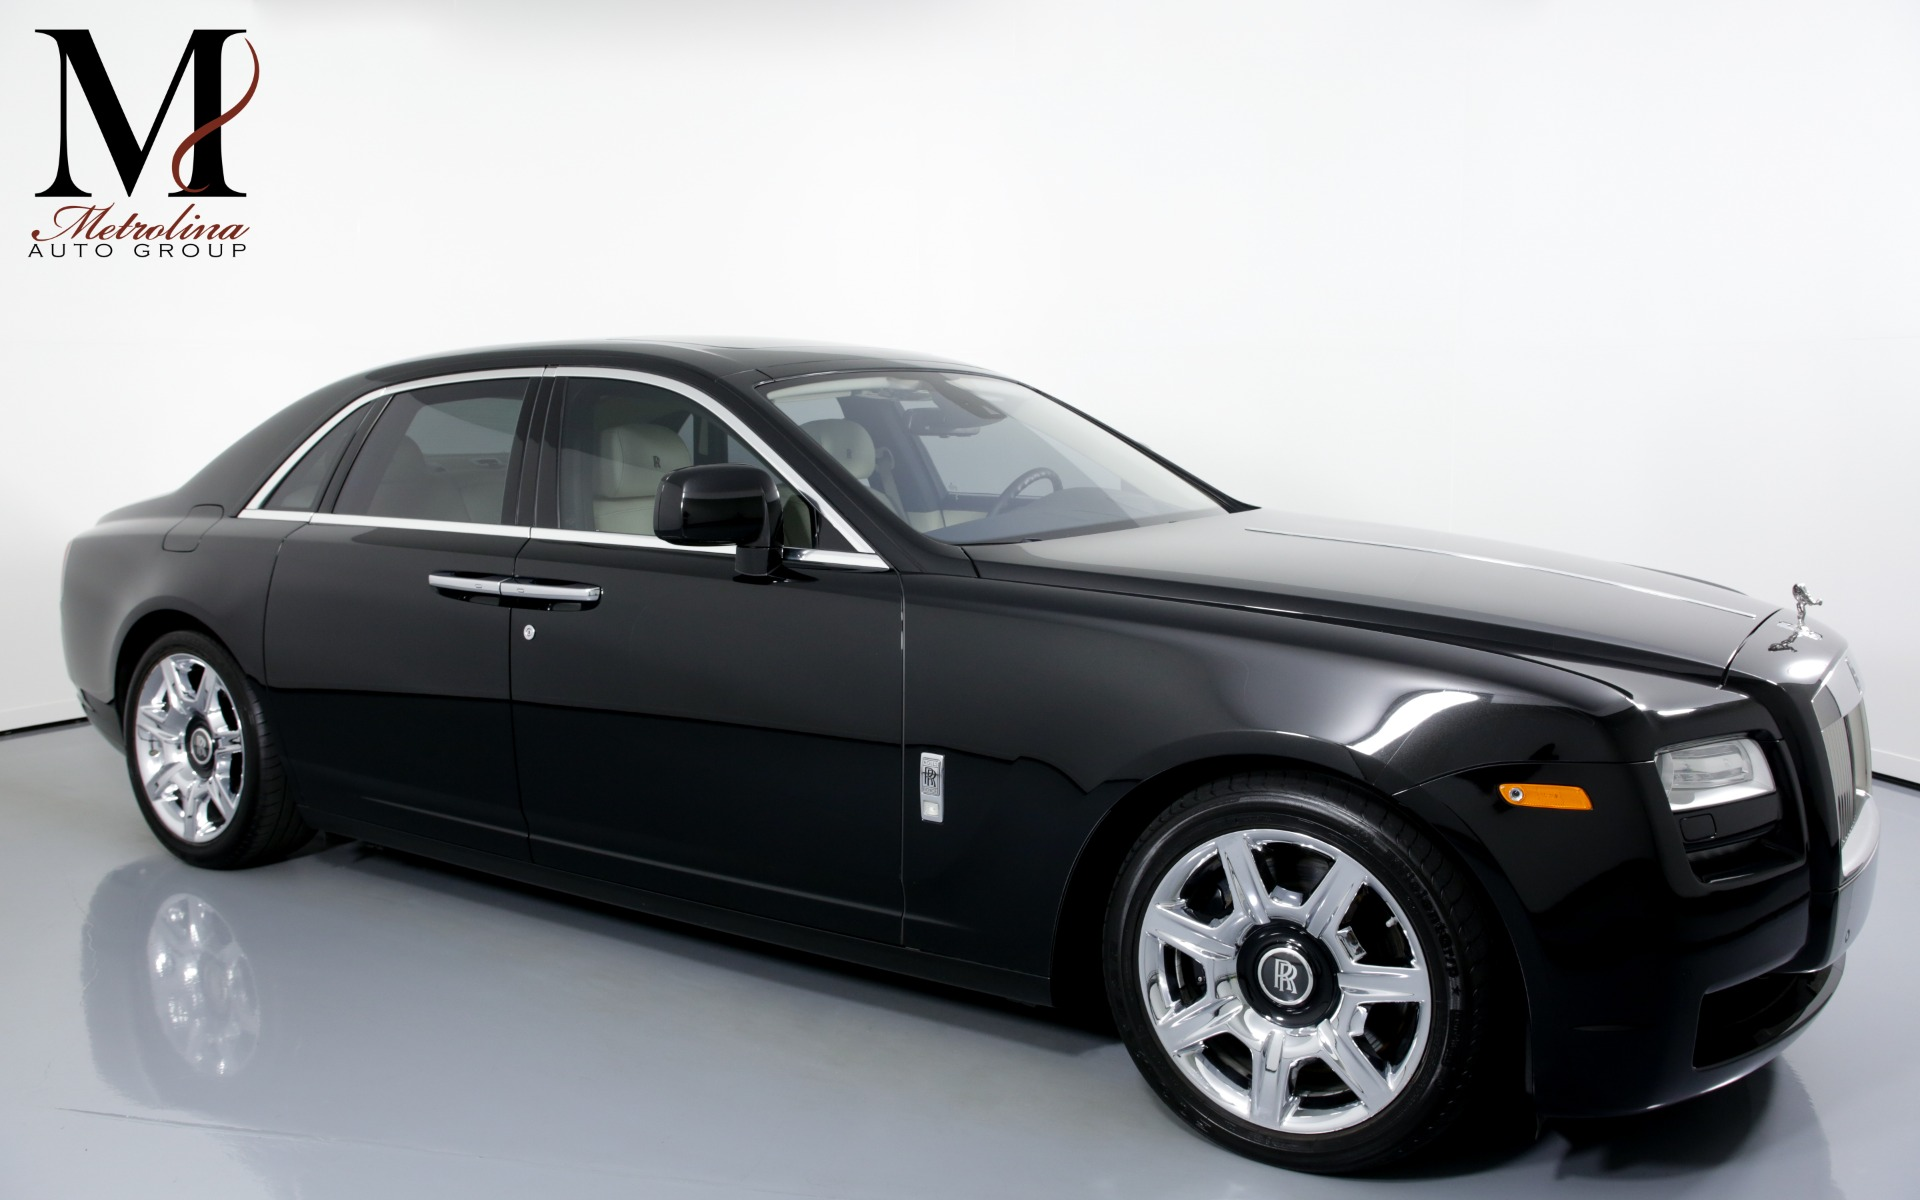 Used 2011 Rolls-Royce Ghost Base 4dr Sedan for sale Sold at Metrolina Auto Group in Charlotte NC 28217 - 1